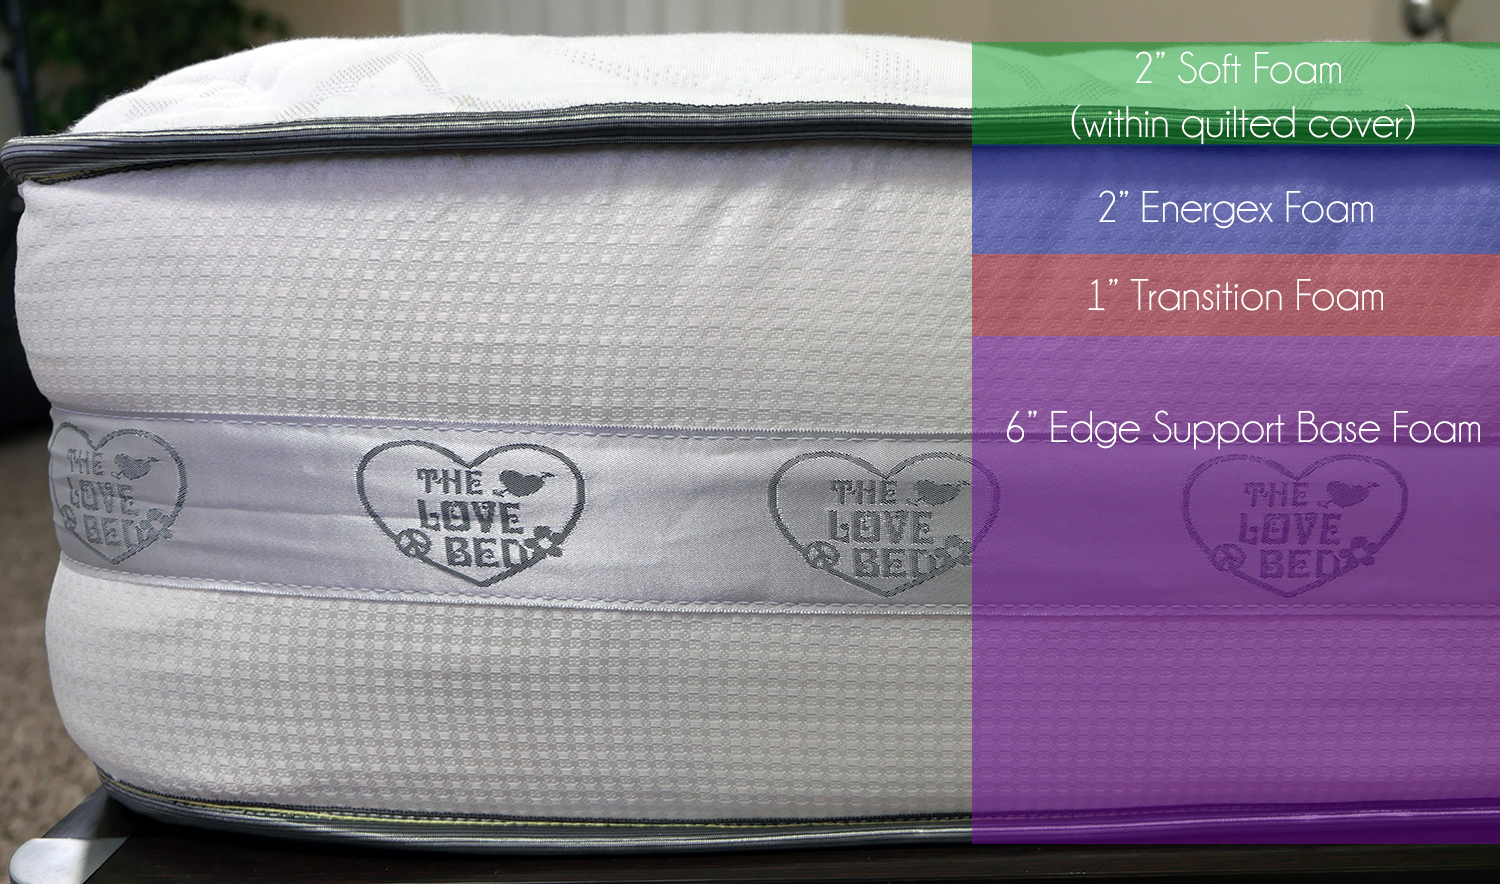 Nest Love Bed Mattress Review (With images) Bed mattress